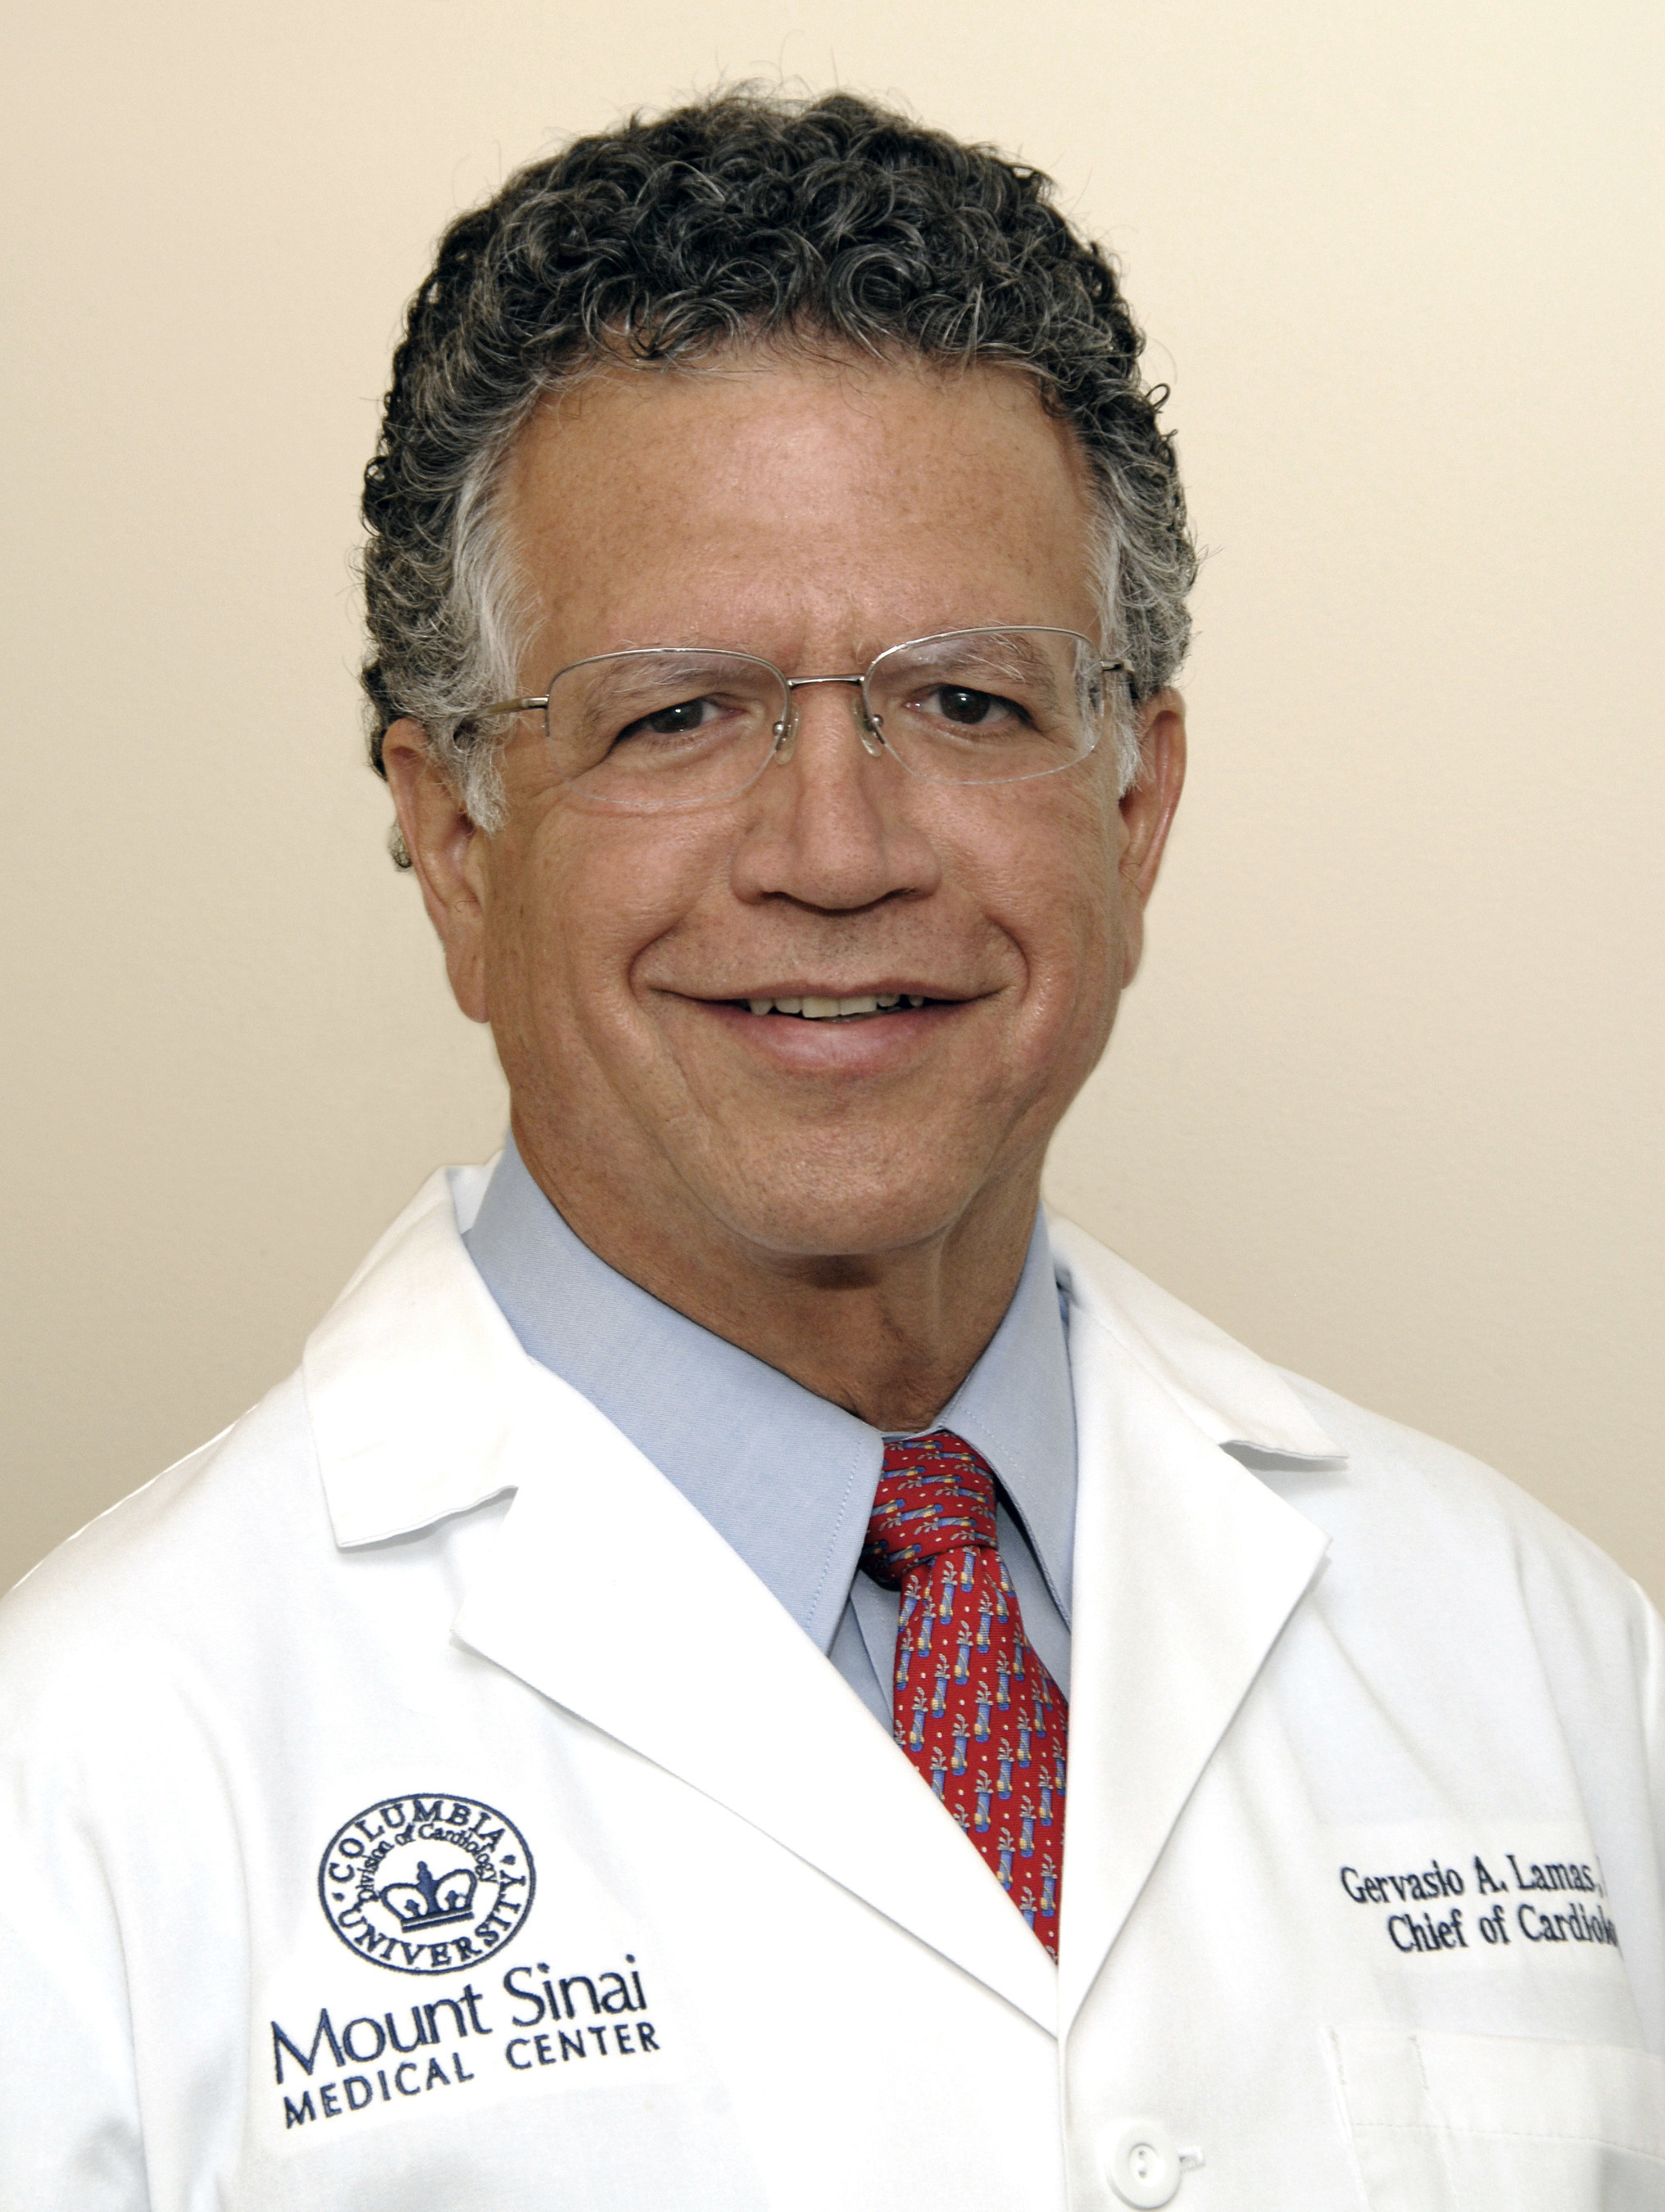 Dr. Gervasio Lamas, chairman of medicine and Chief of the Columbia University Division of Cardiology at Mount Sinai Medical Center of Florida is the study chairman for the second Trial to Assess Chelation Therapy (TACT2), which will measure the effects of chelation therapy coupled with oral vitamins on patients with diabetes.